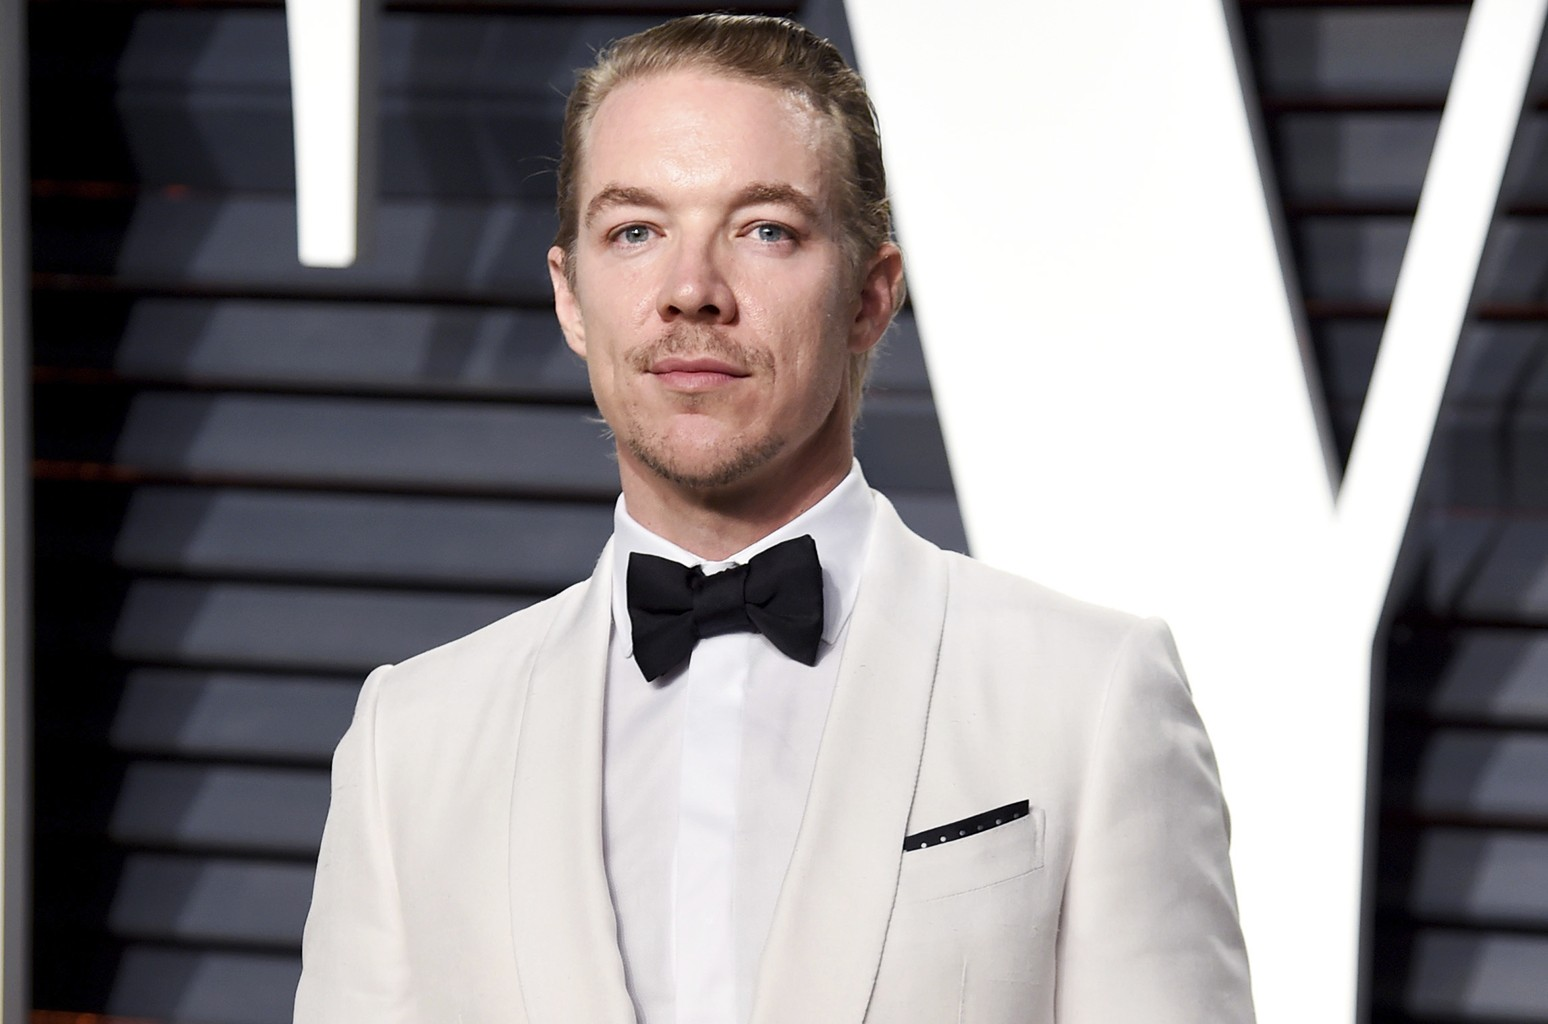 Diplo arrives at the Vanity Fair Oscar Party on Feb. 26, 2017 in Beverly Hills, Calif.